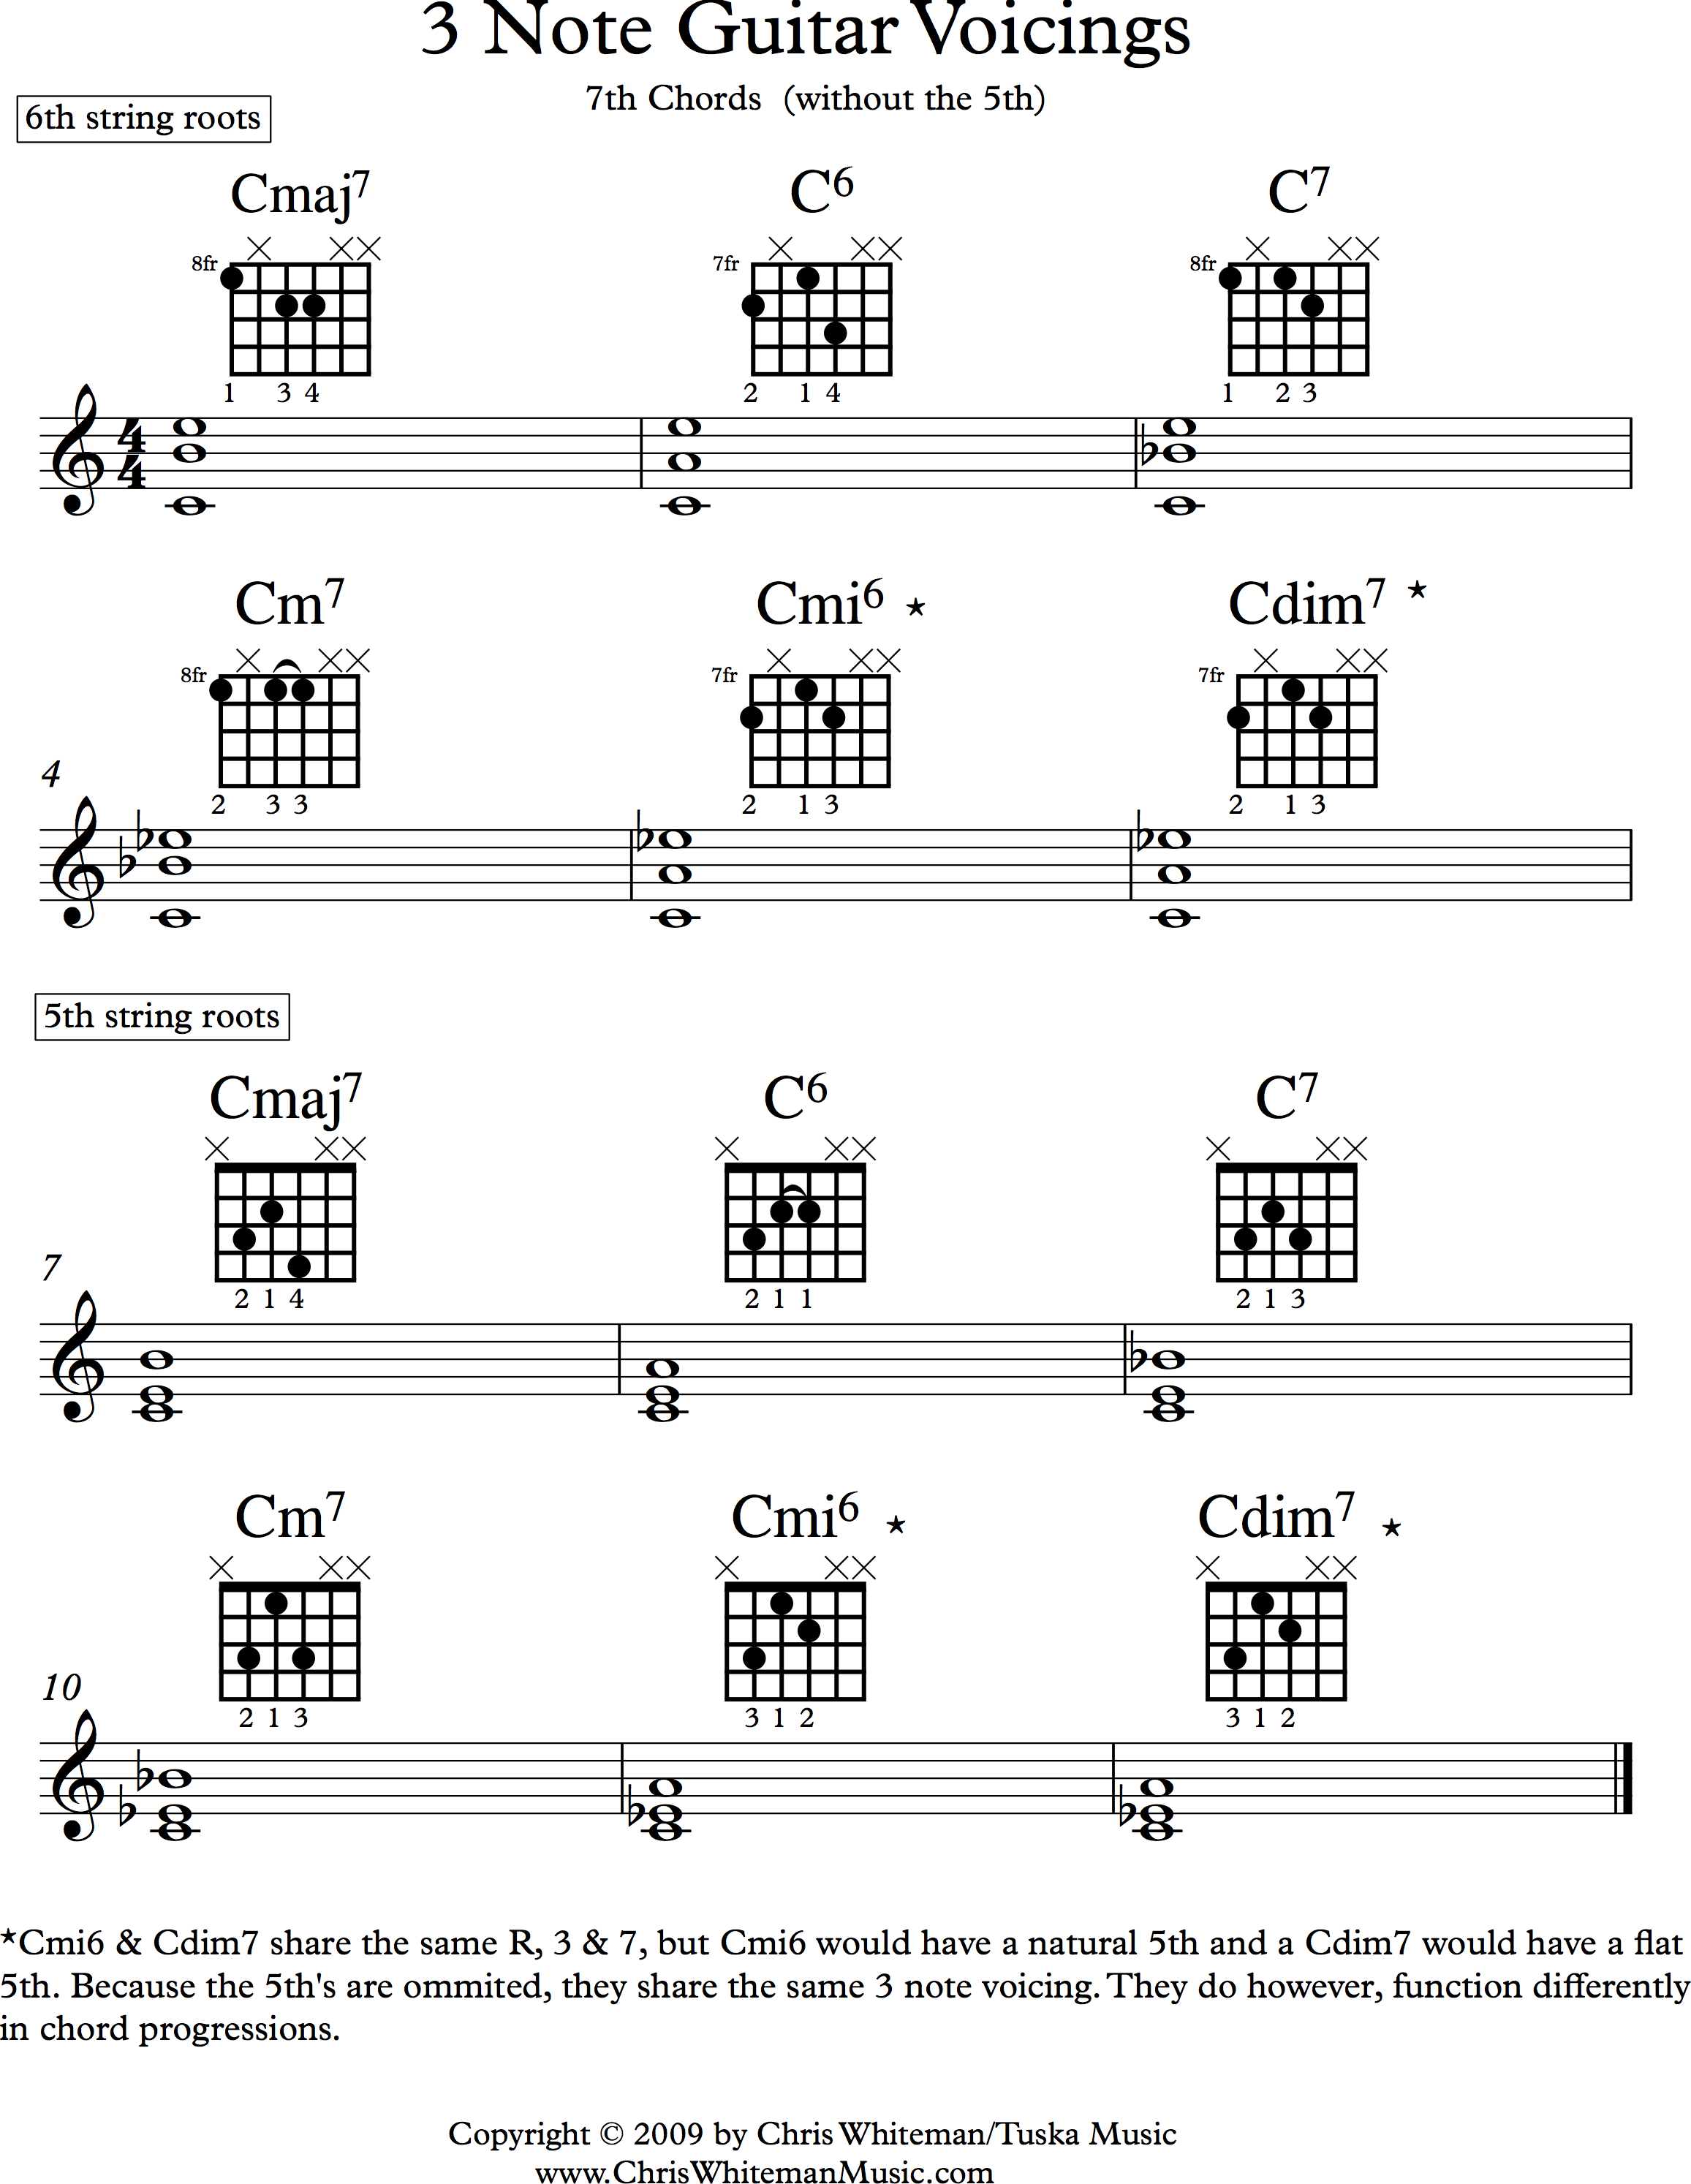 3 Note Guitar Voicing (7th Chords without 5th).png